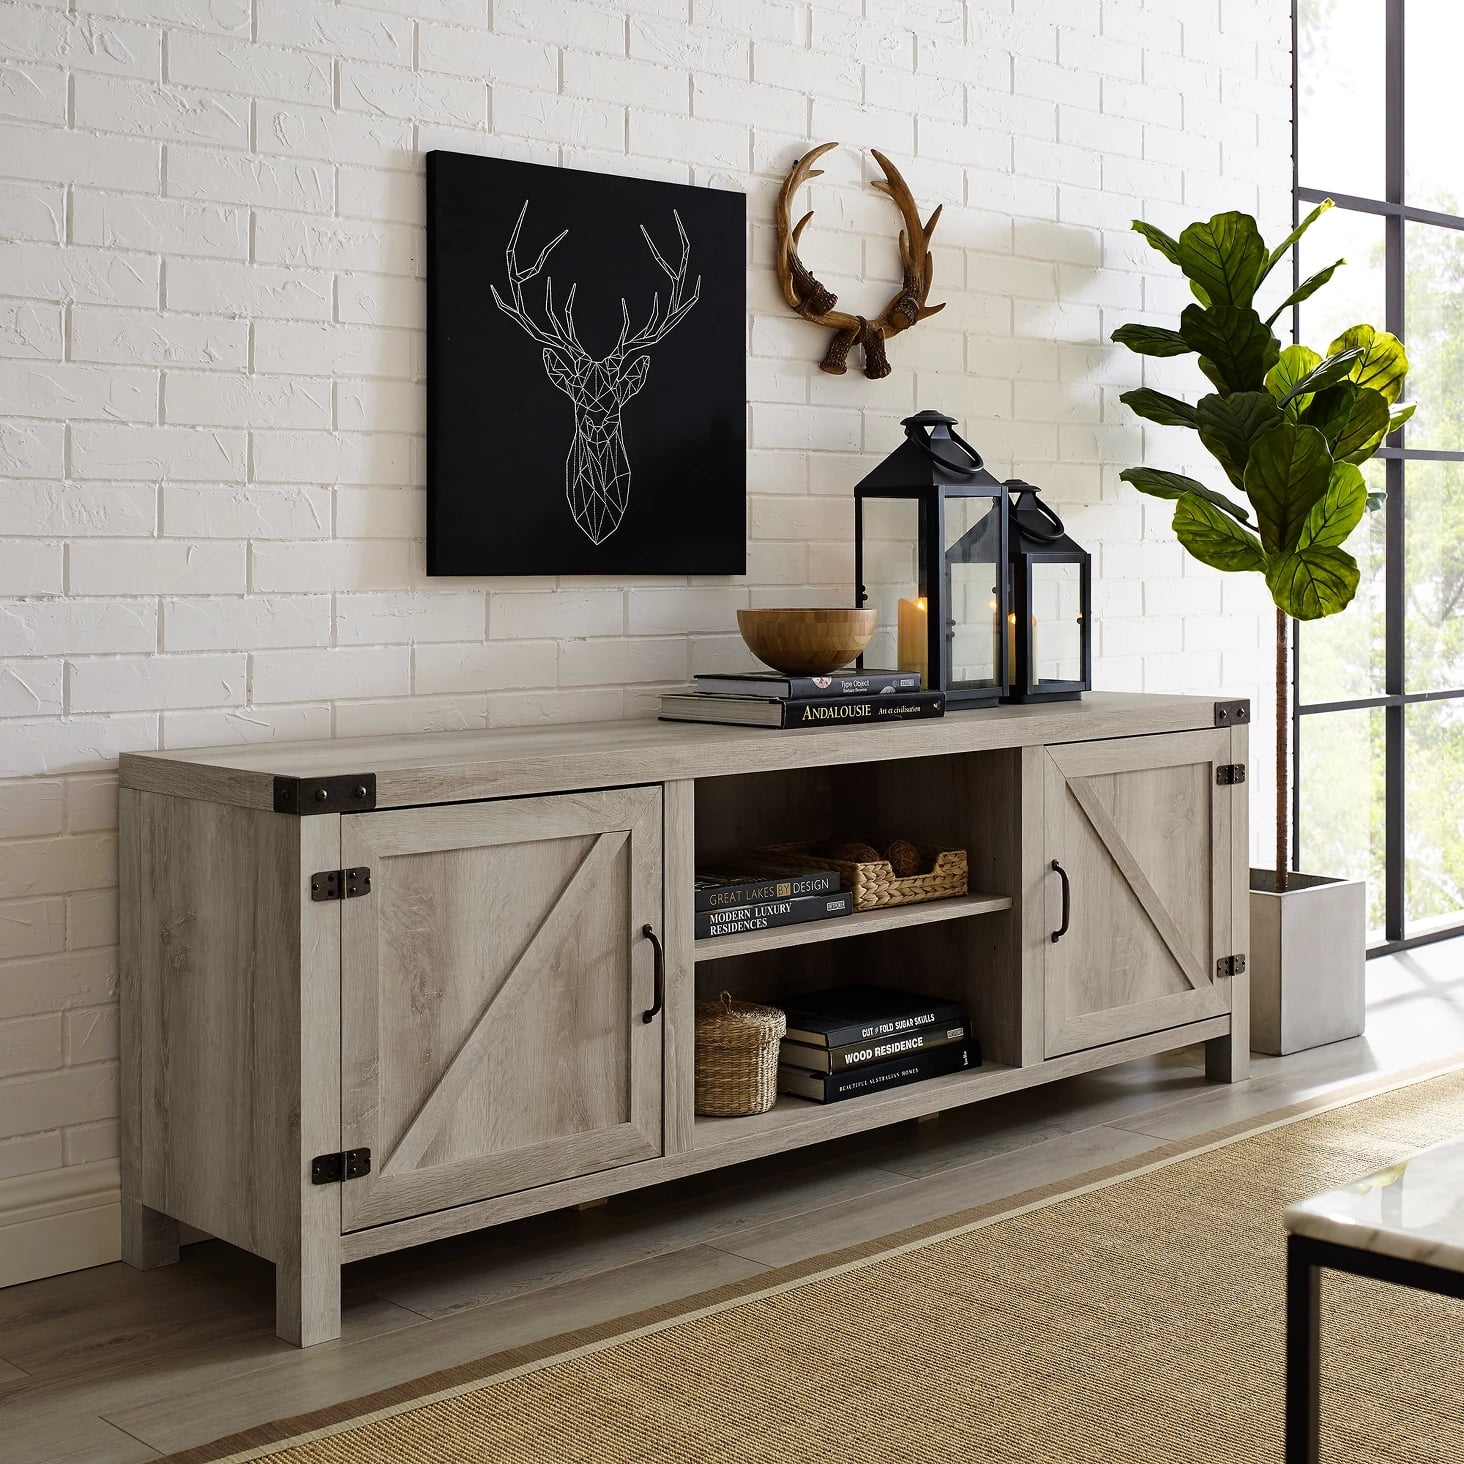 Modern Farmhouse Barn Door Tv Stand Best Target Living Room Furniture With Storage Popsugar Home Australia Photo 12